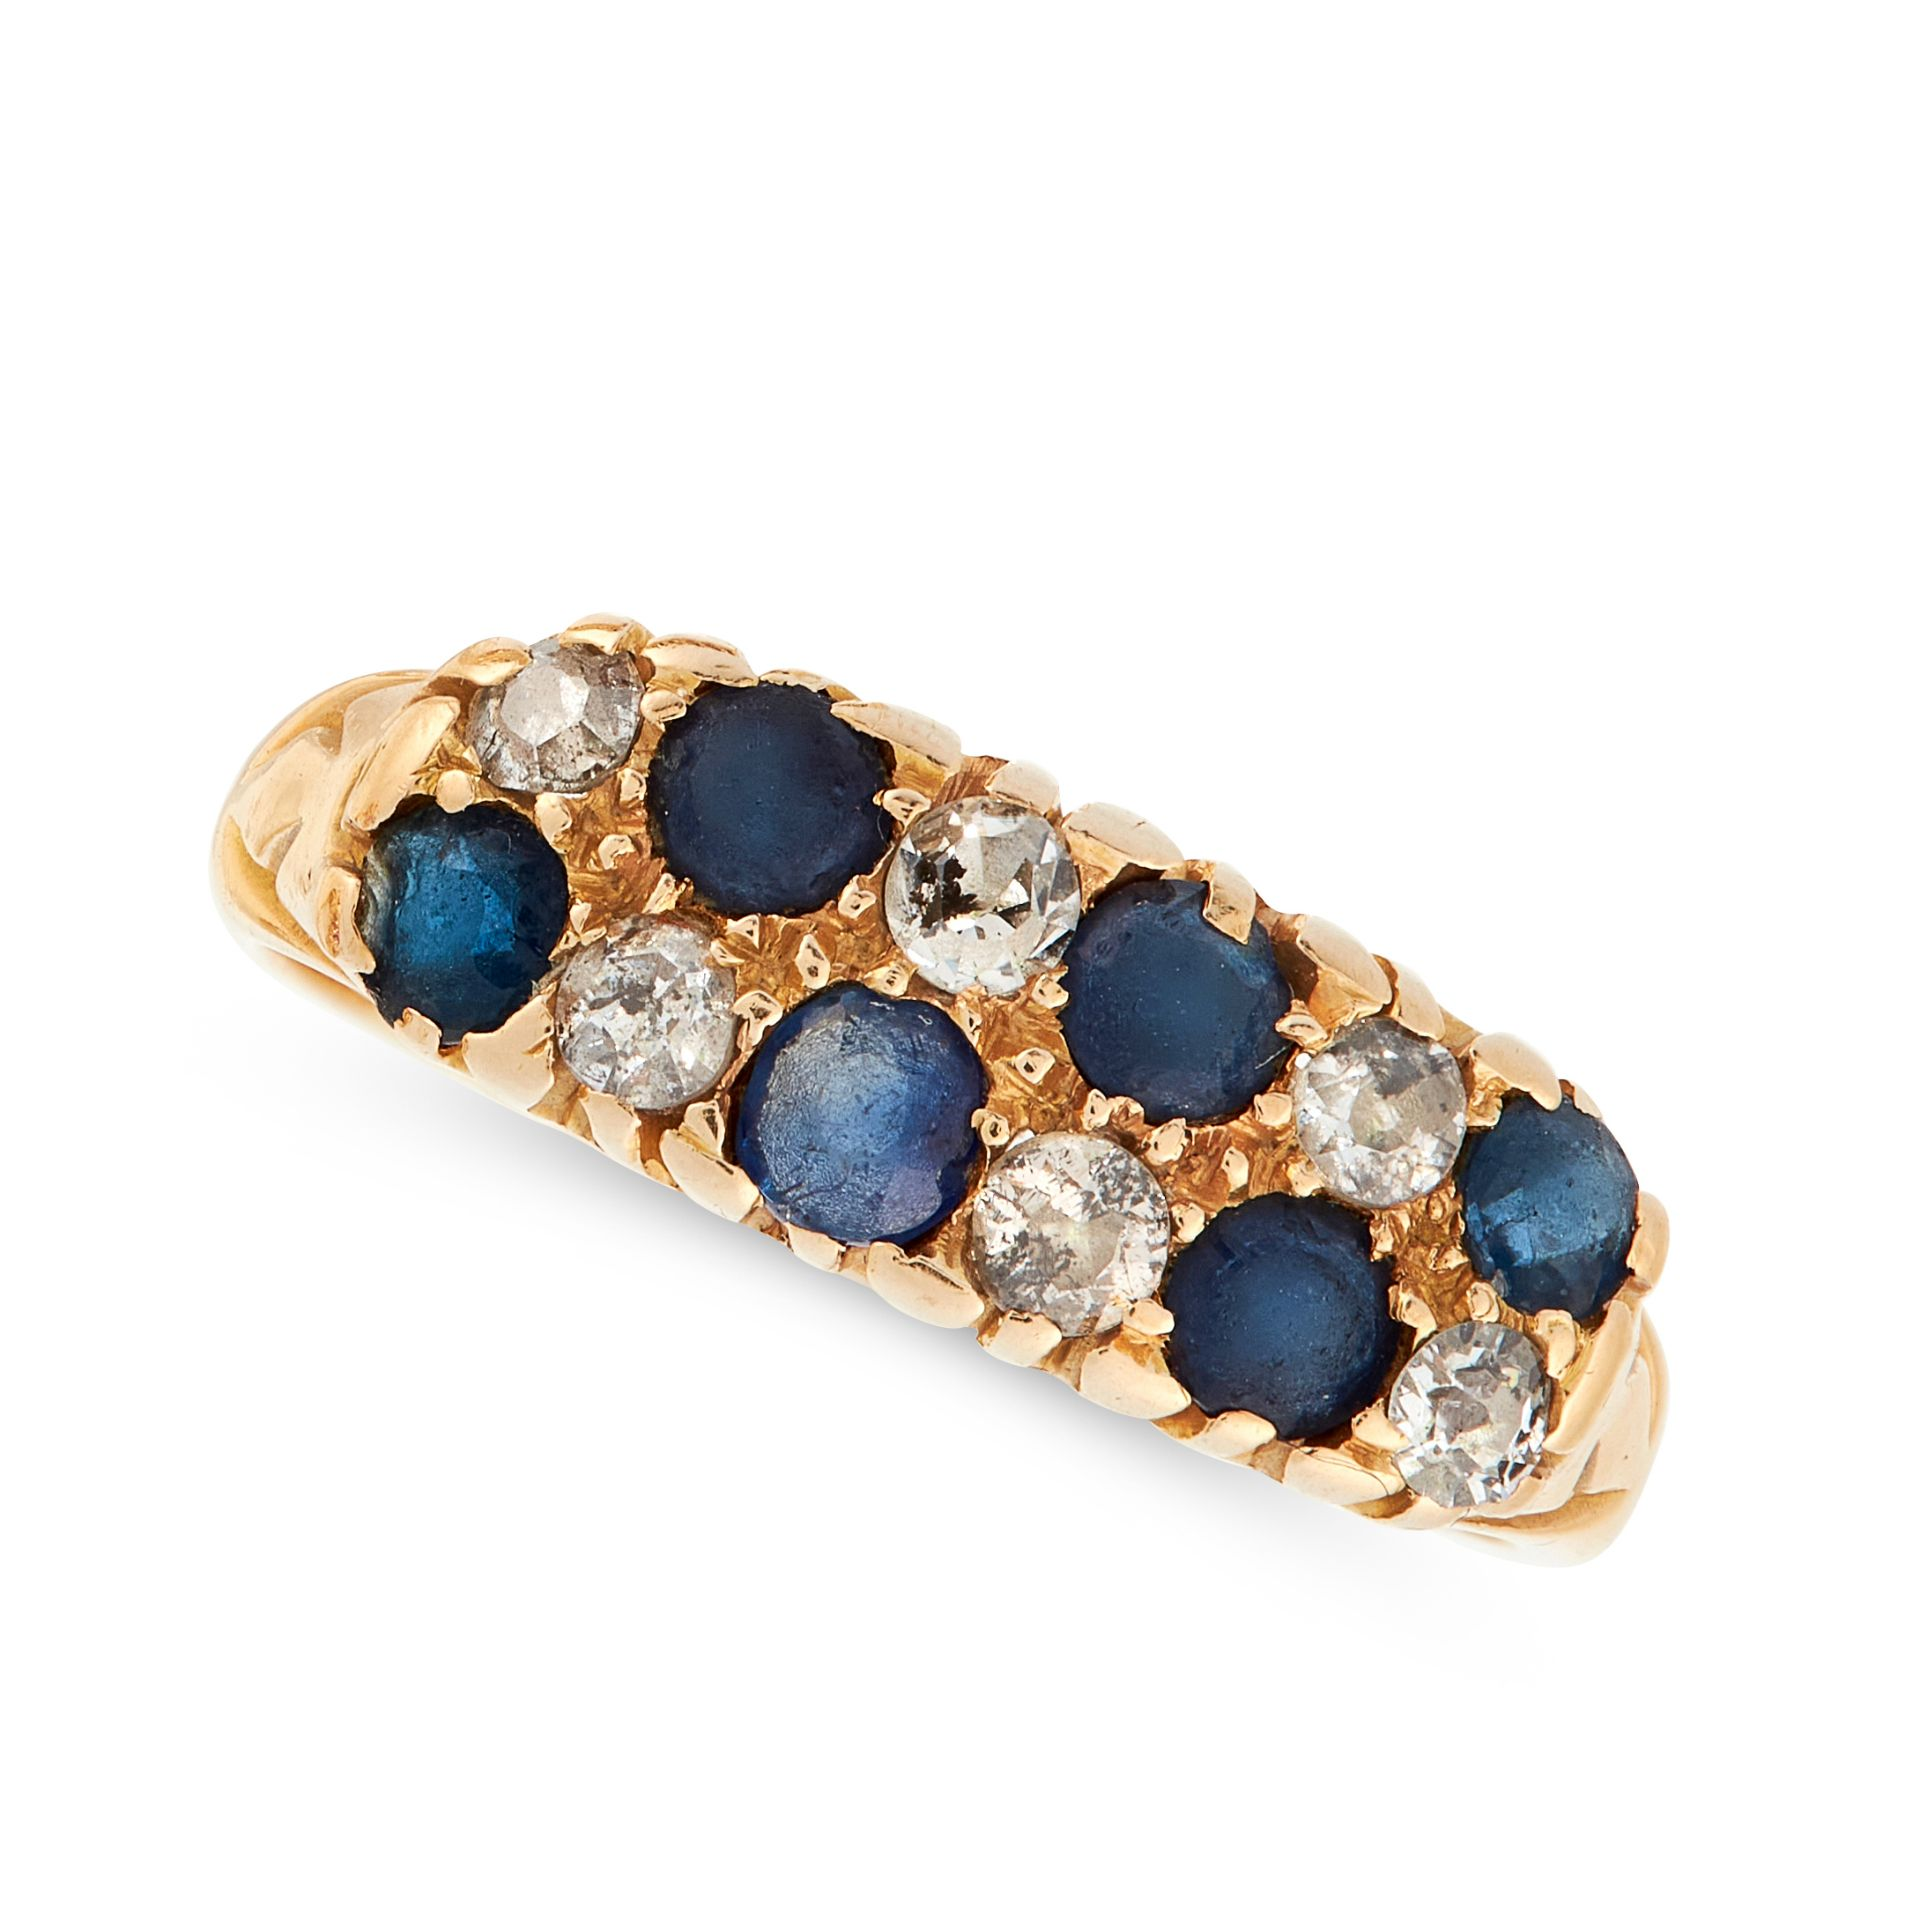 A SAPPHIRE AND DIAMOND RING in 18ct yellow gold, the panel face is set with two rows of